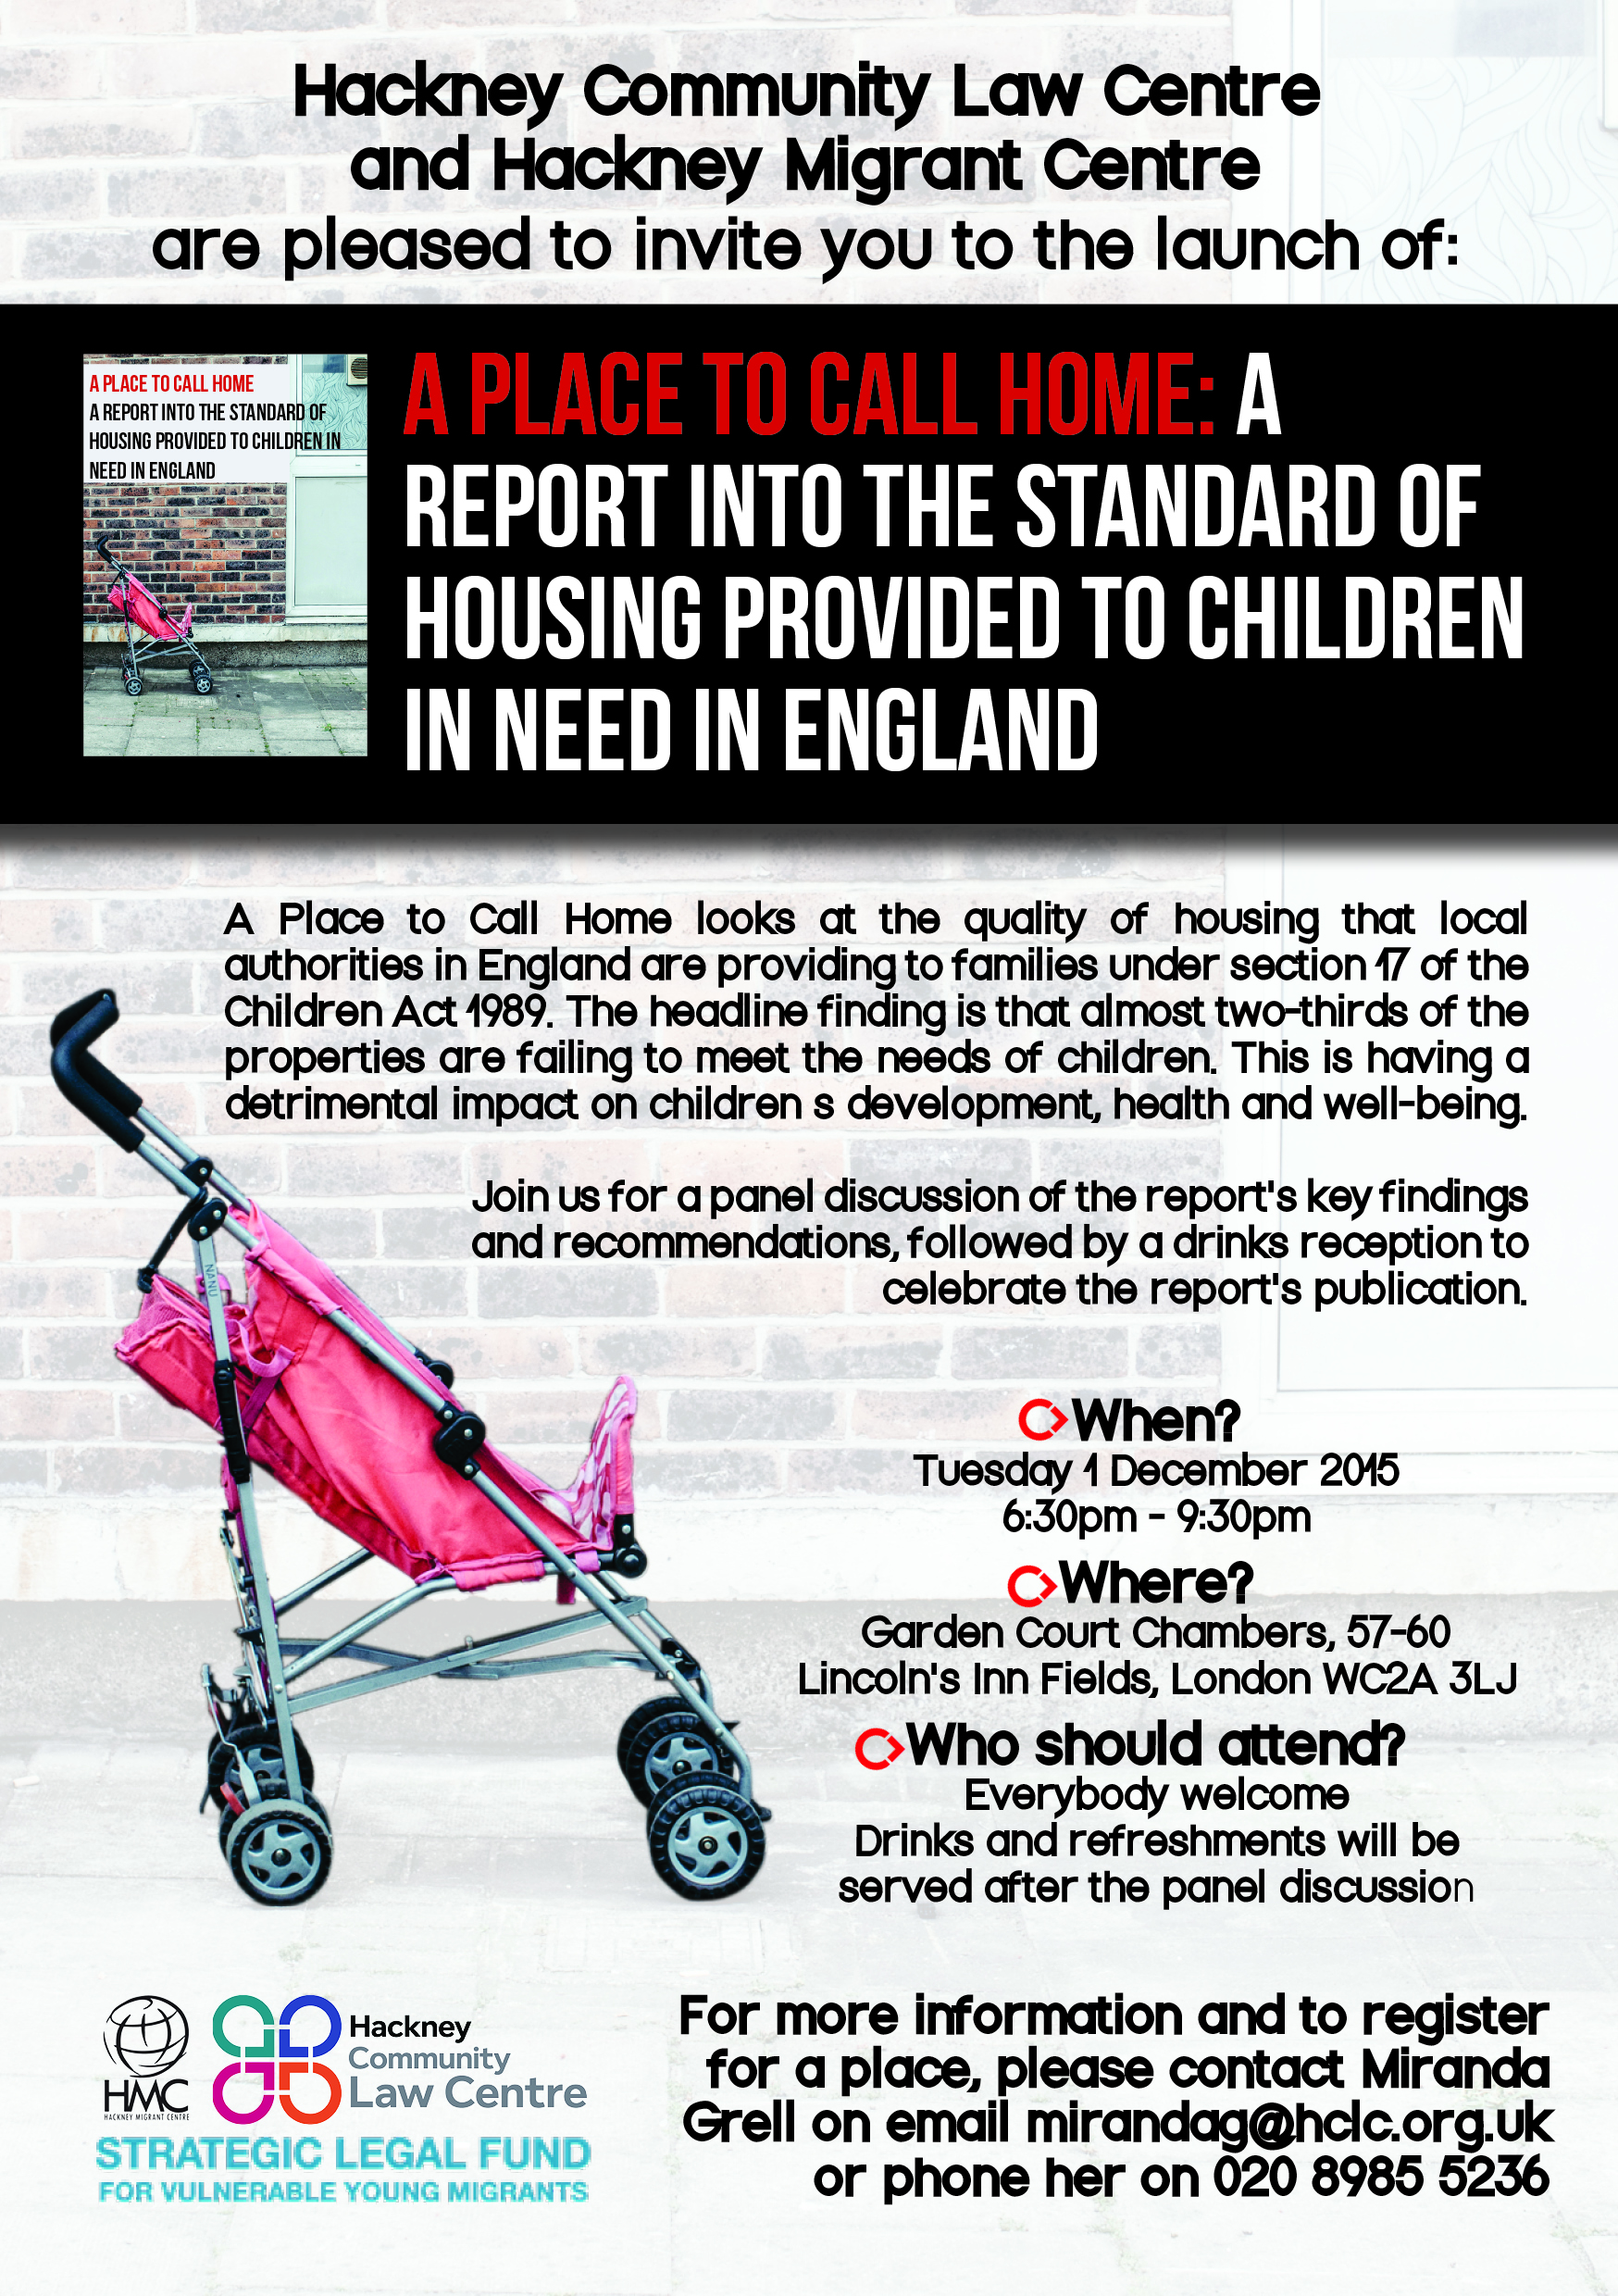 HCLC HMC e-leaflet of A Place to Call Home Report December 01 2015